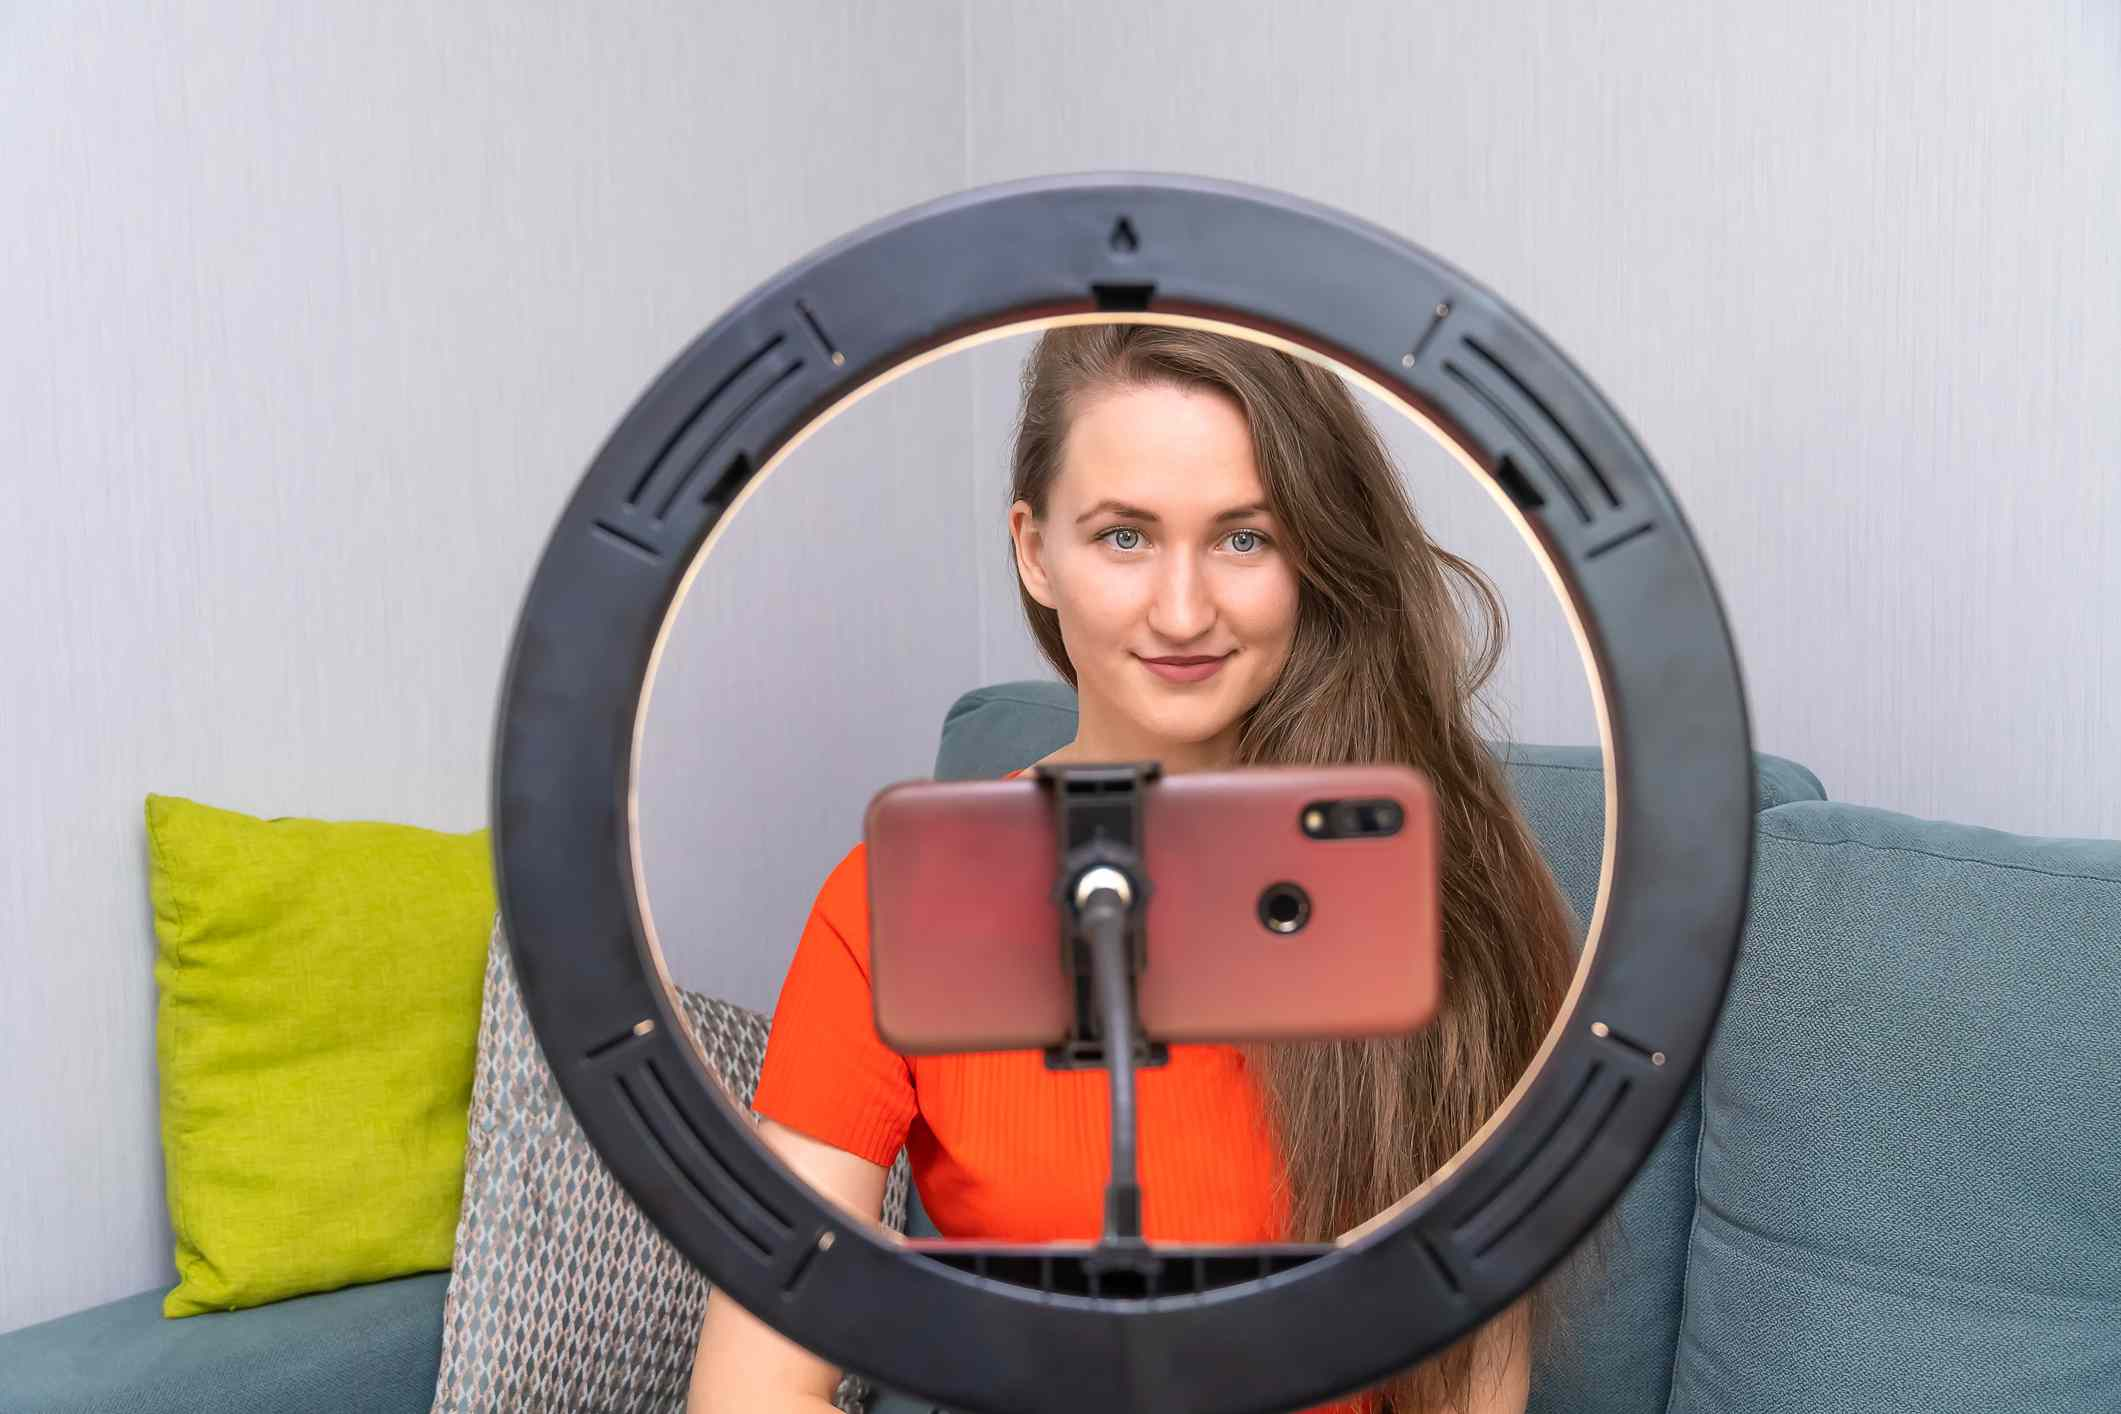 A woman in front of a selfie light